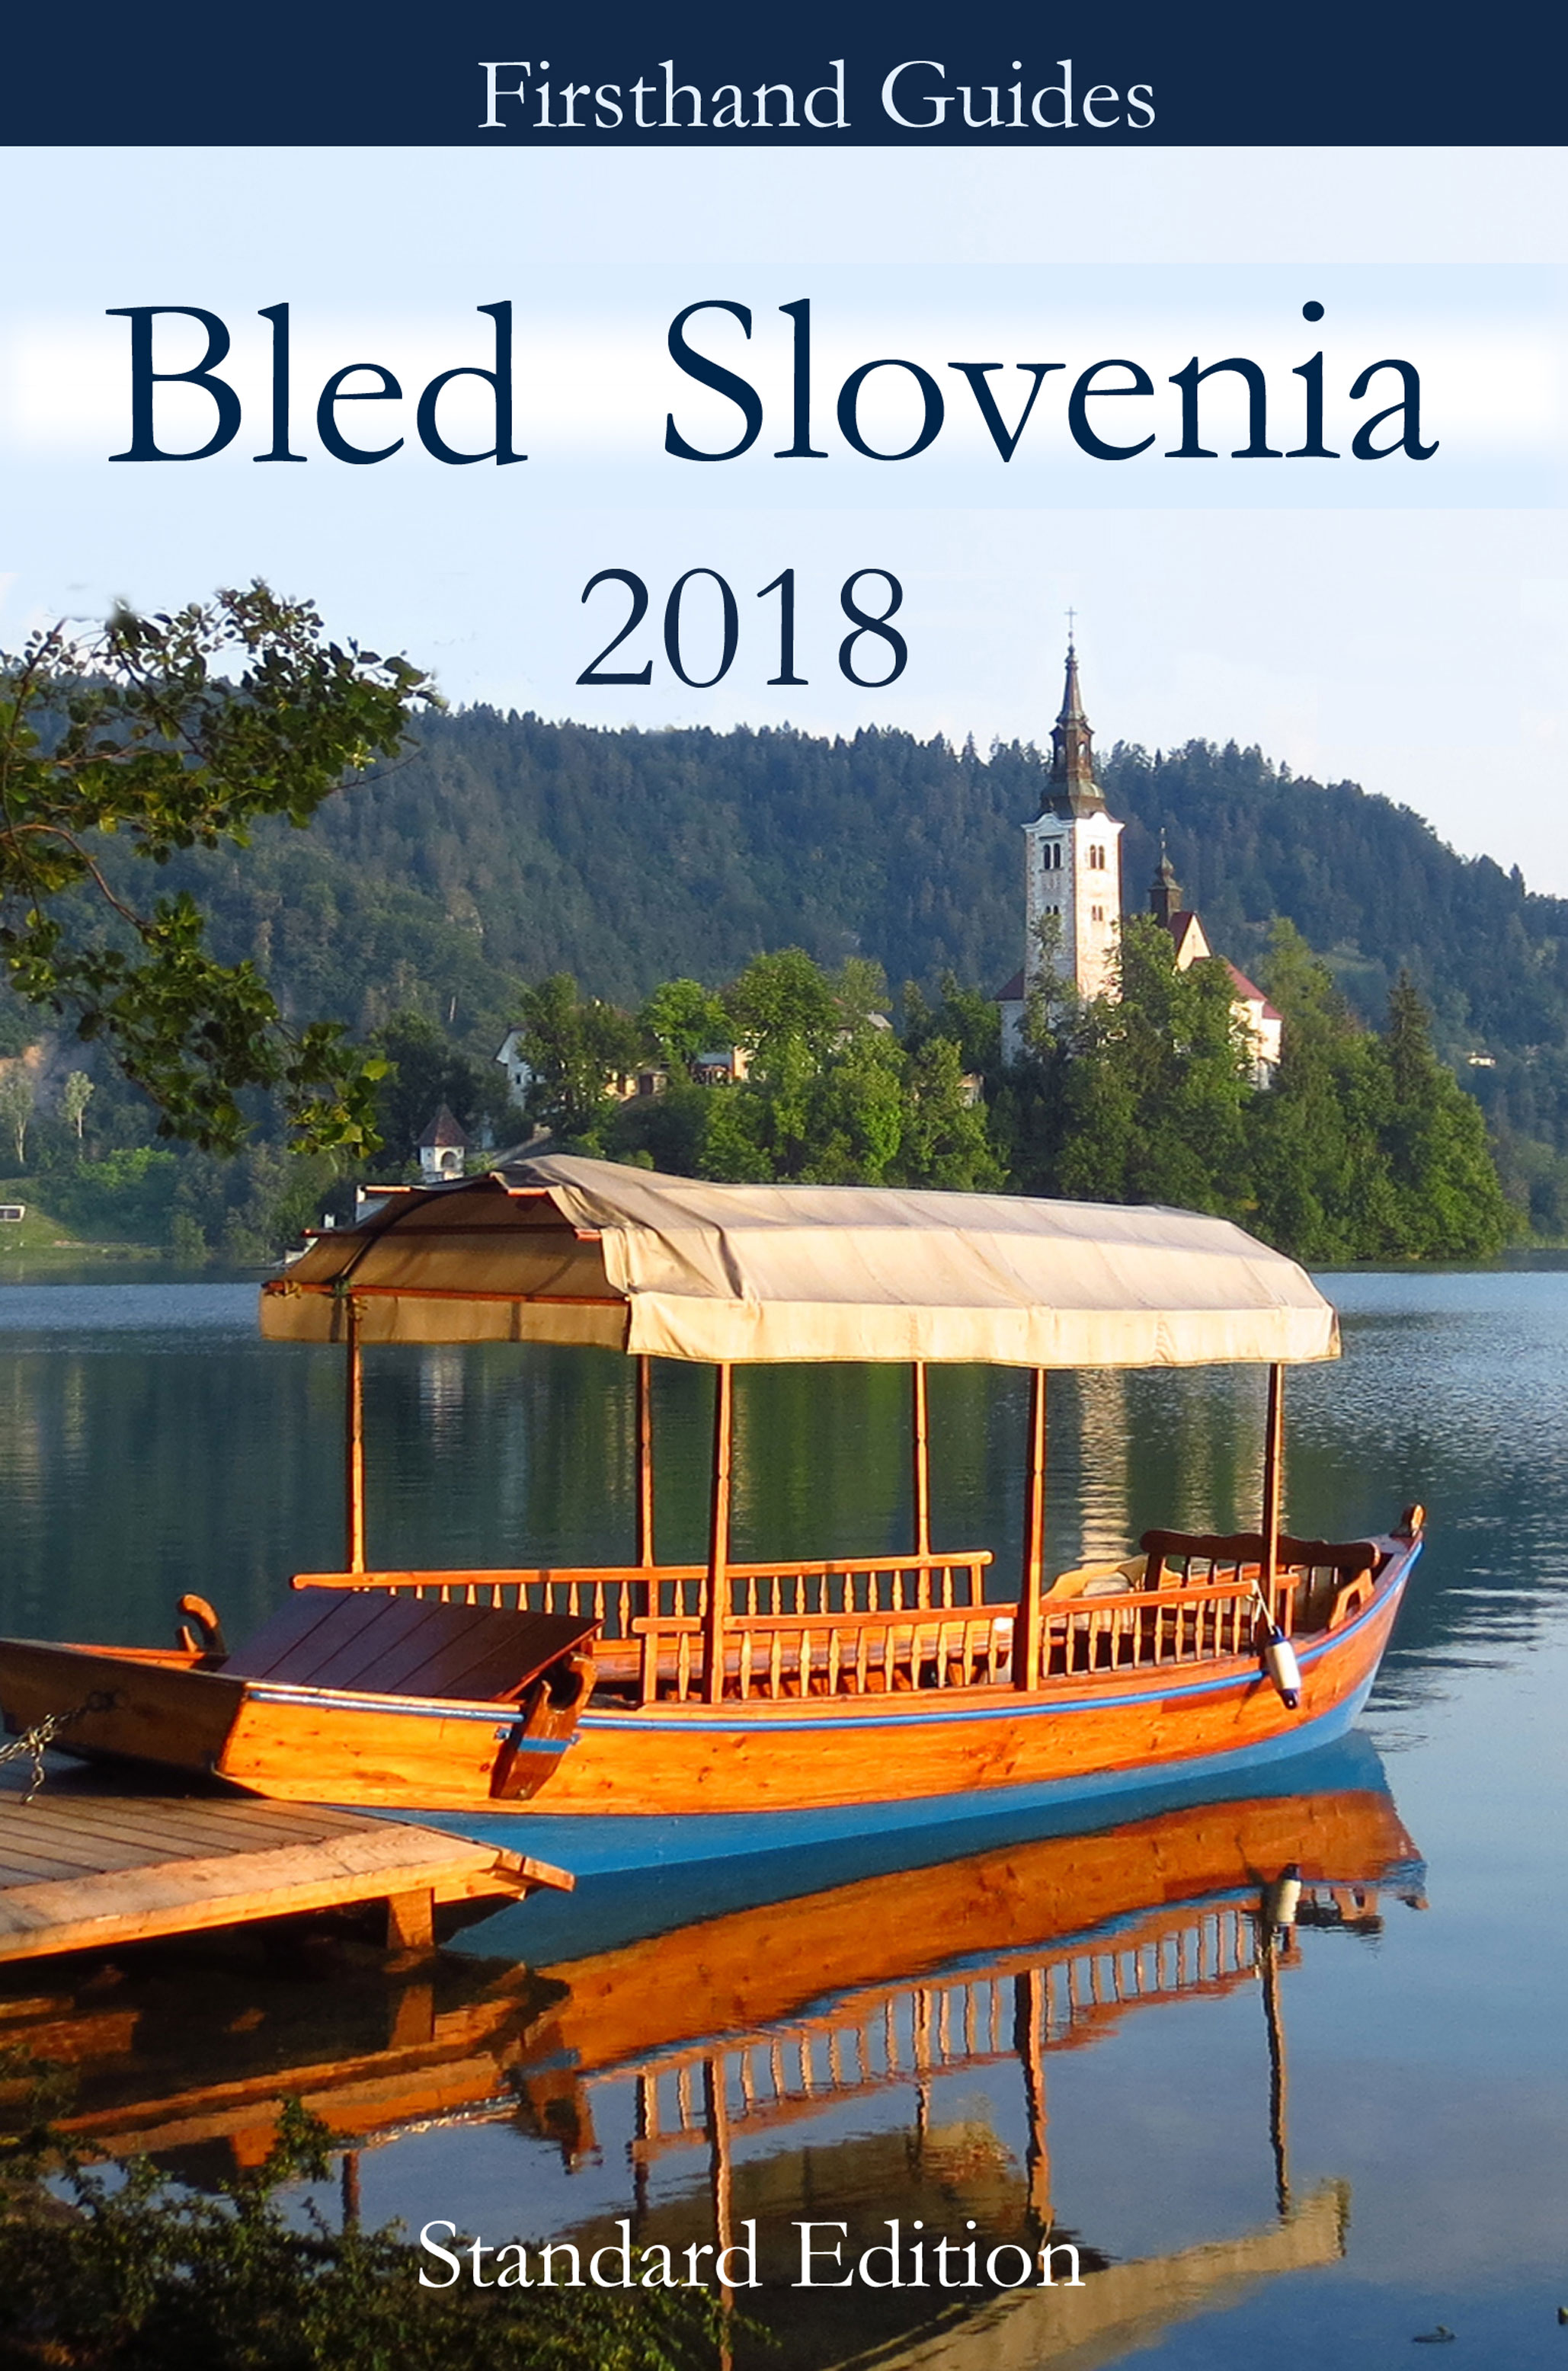 Bled Slovenia Guide 2018